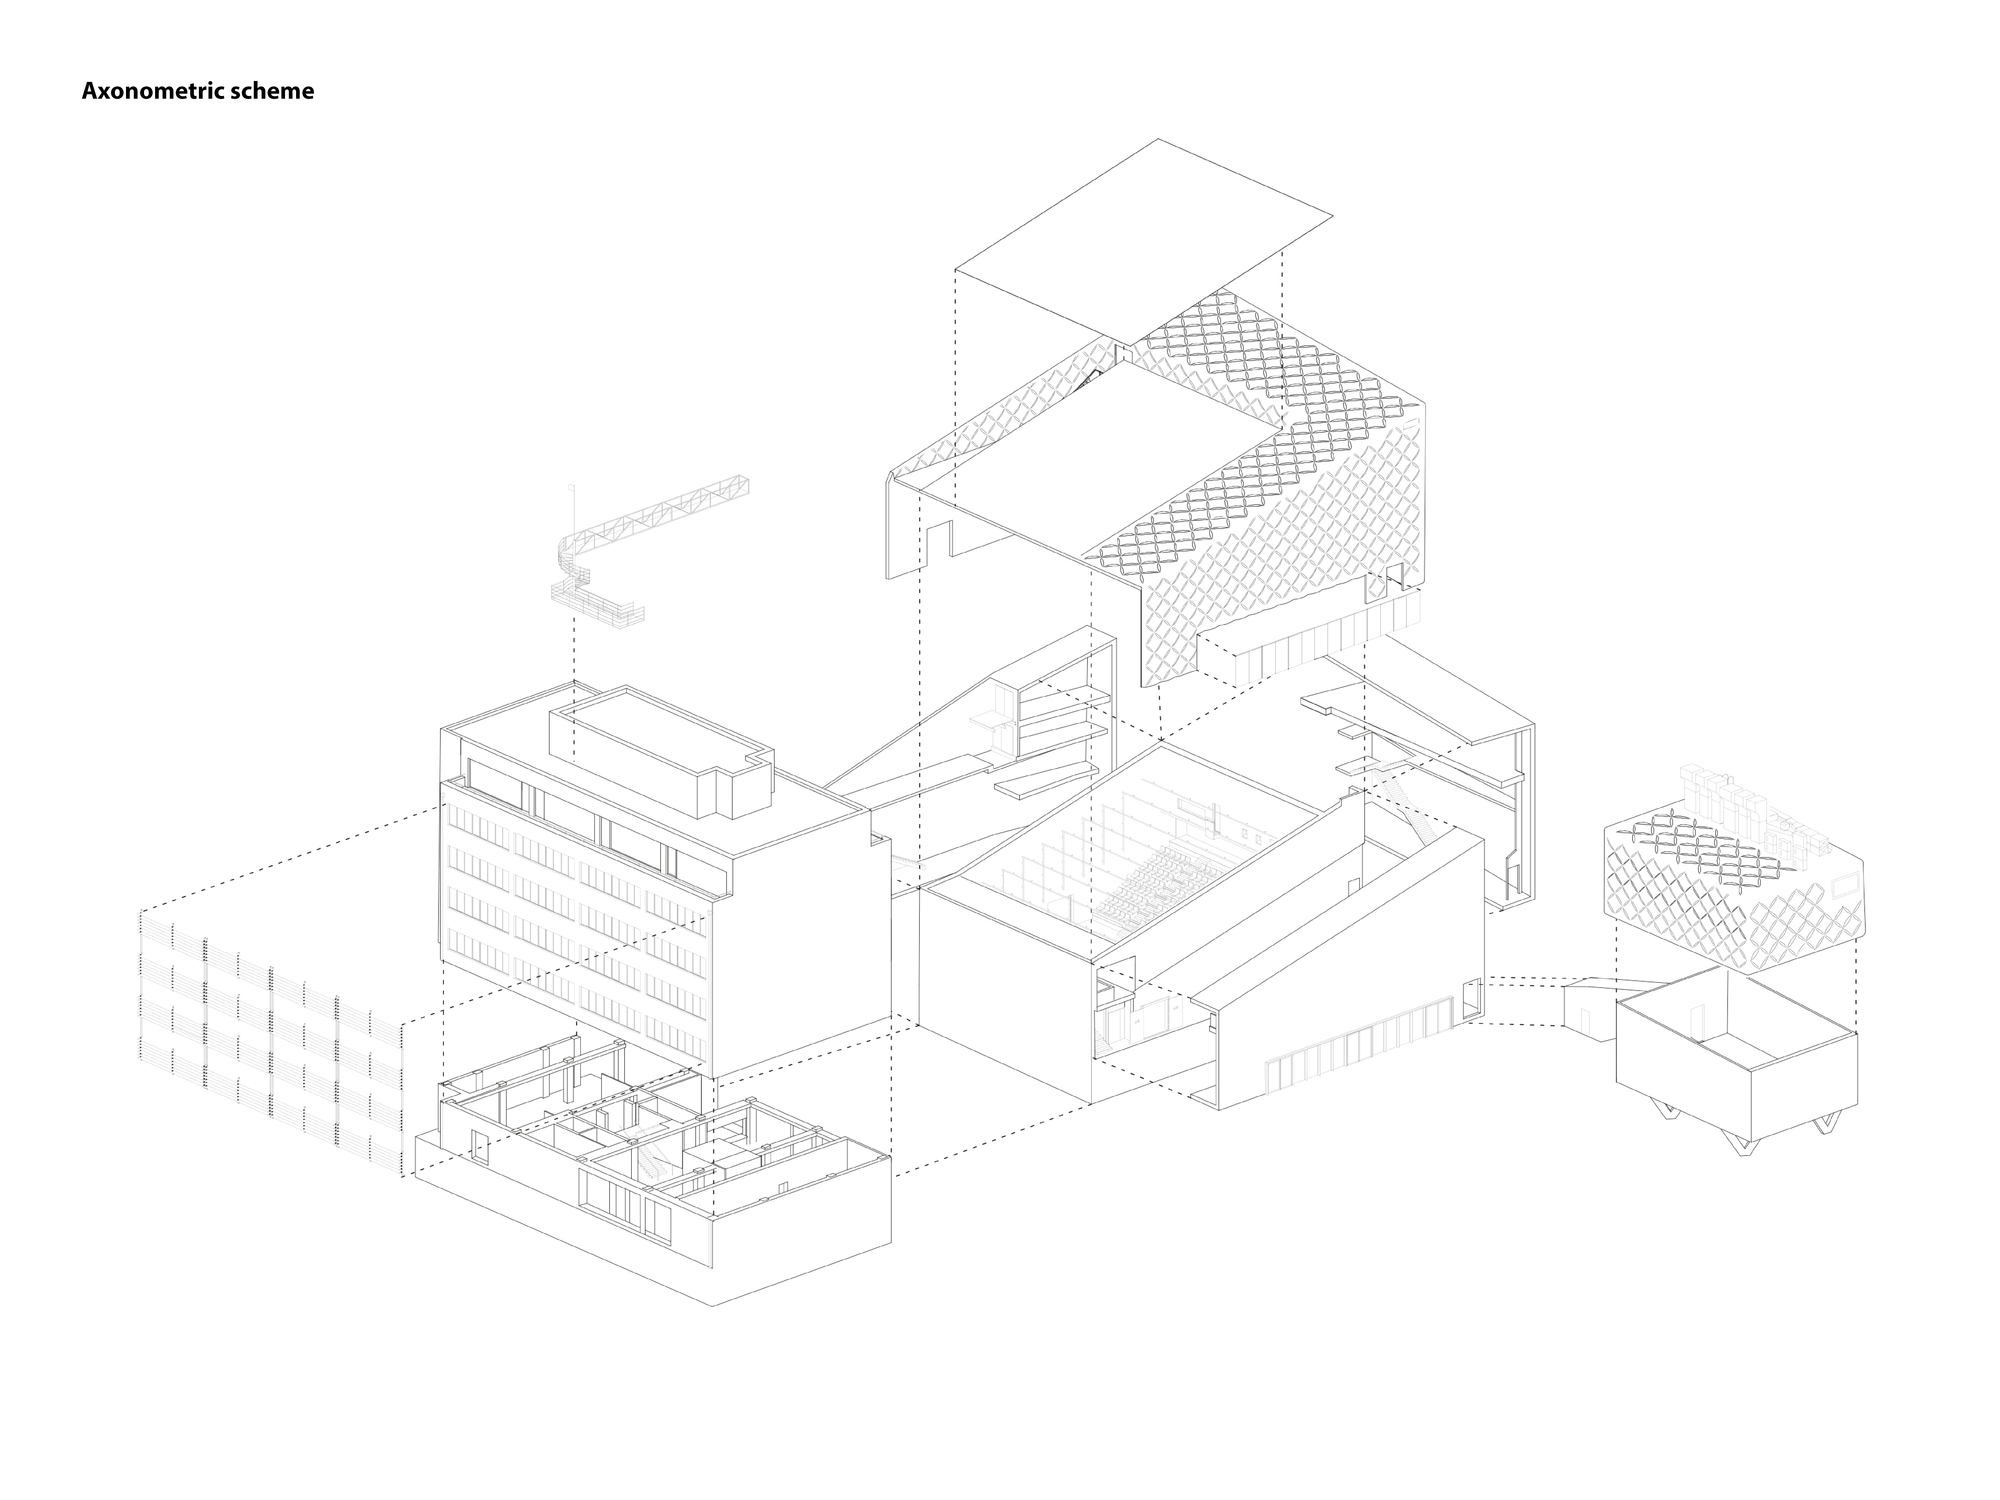 30_axonometric_scheme.jpg